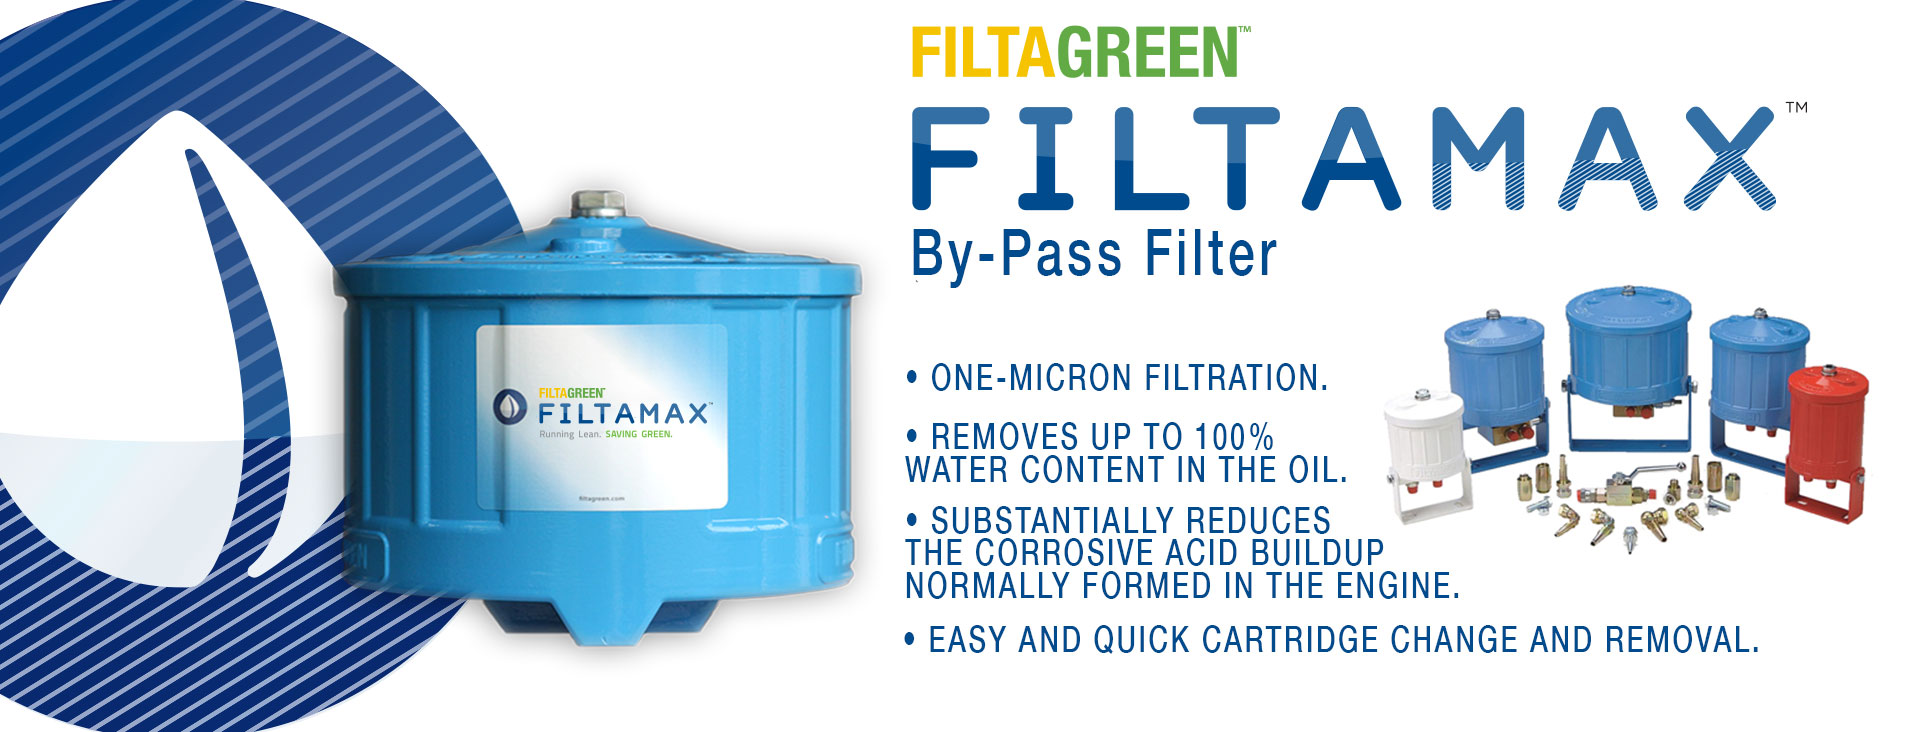 FiltaMax-By-pass-product